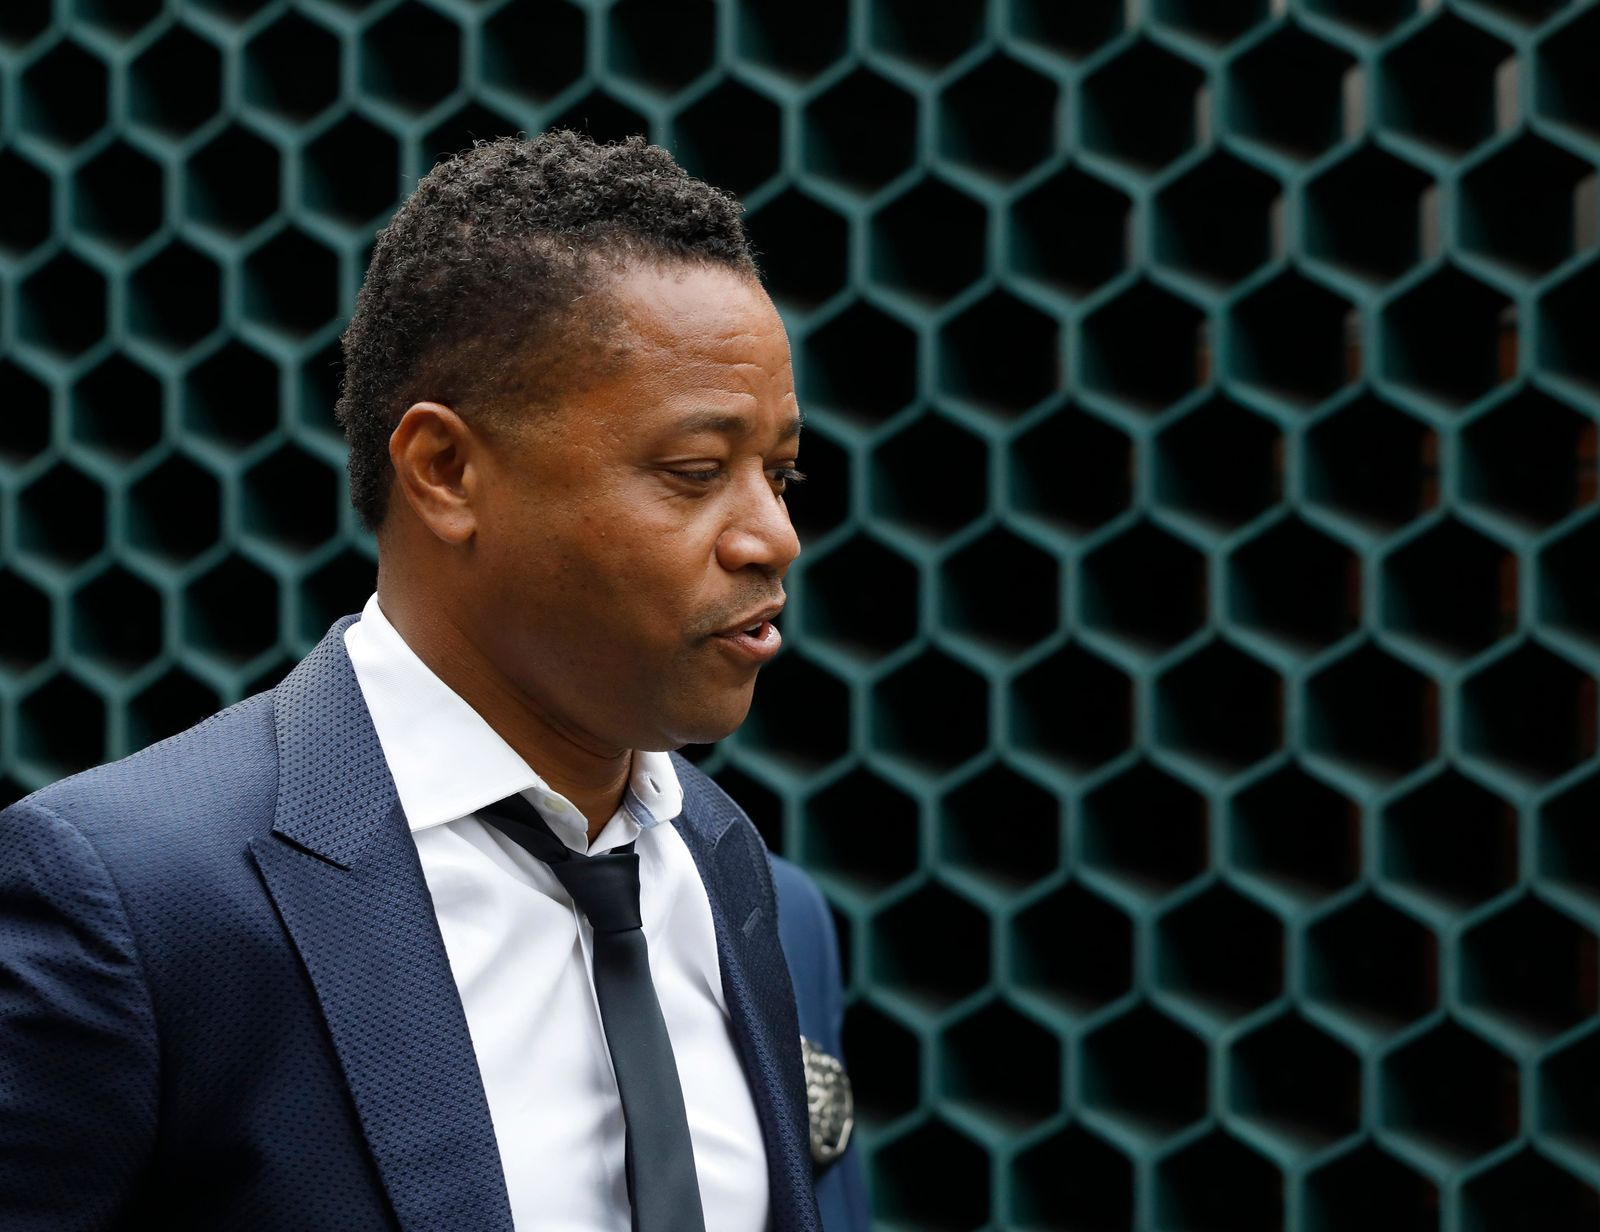 Actor Cuba Gooding Jr., left, is lead by a police officer from New York's Special Victim's Unit, Thursday, June 13, 2019. (AP Photo/Mark Lennihan)